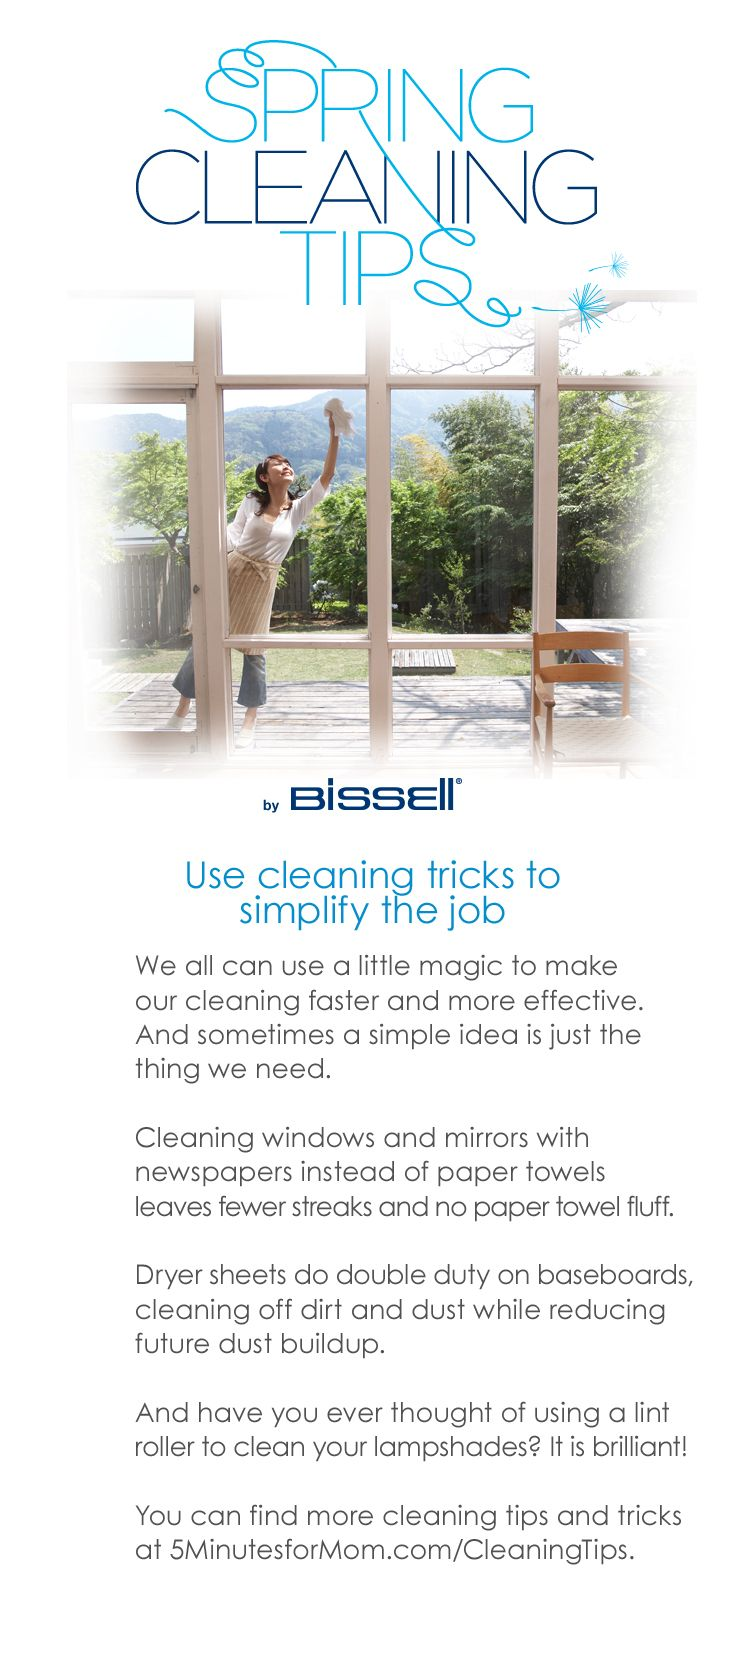 Best thing to clean windows with - Use Cleaning Tricks To Simplify The Job Cleaning Windows And Mirrors With Newspapers Instead Of